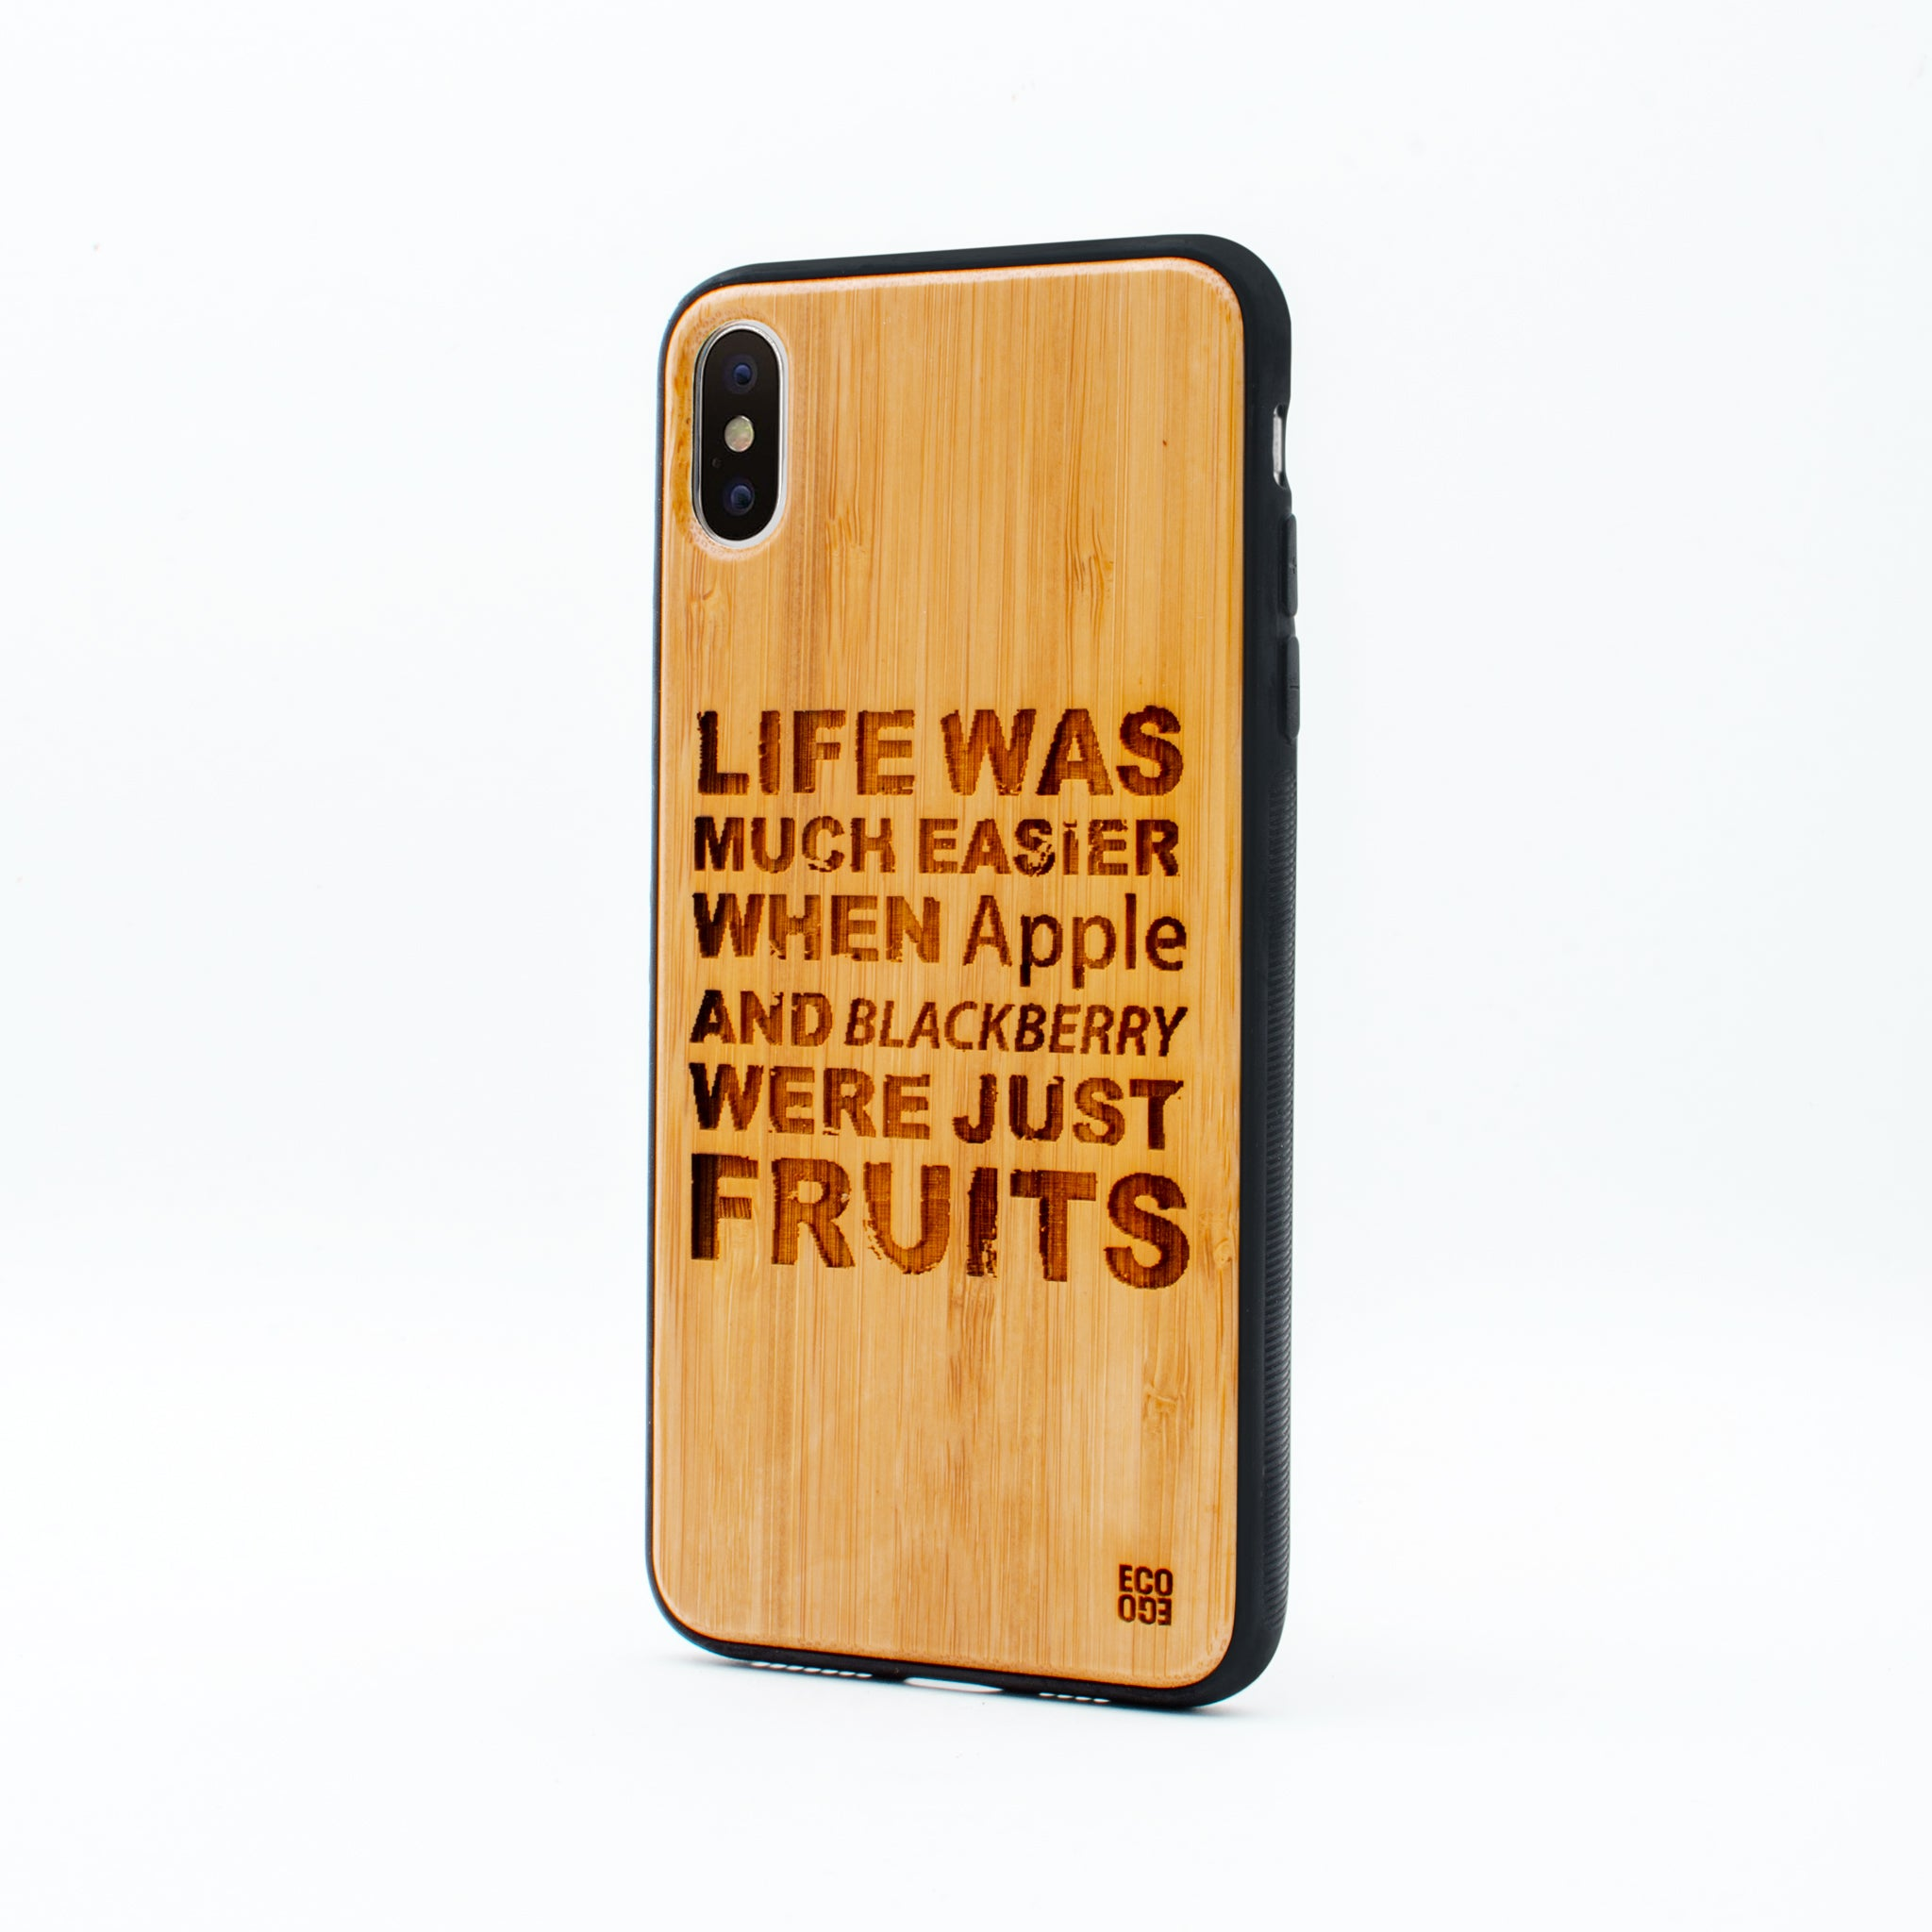 bamboo iphone x max case life was ecoego